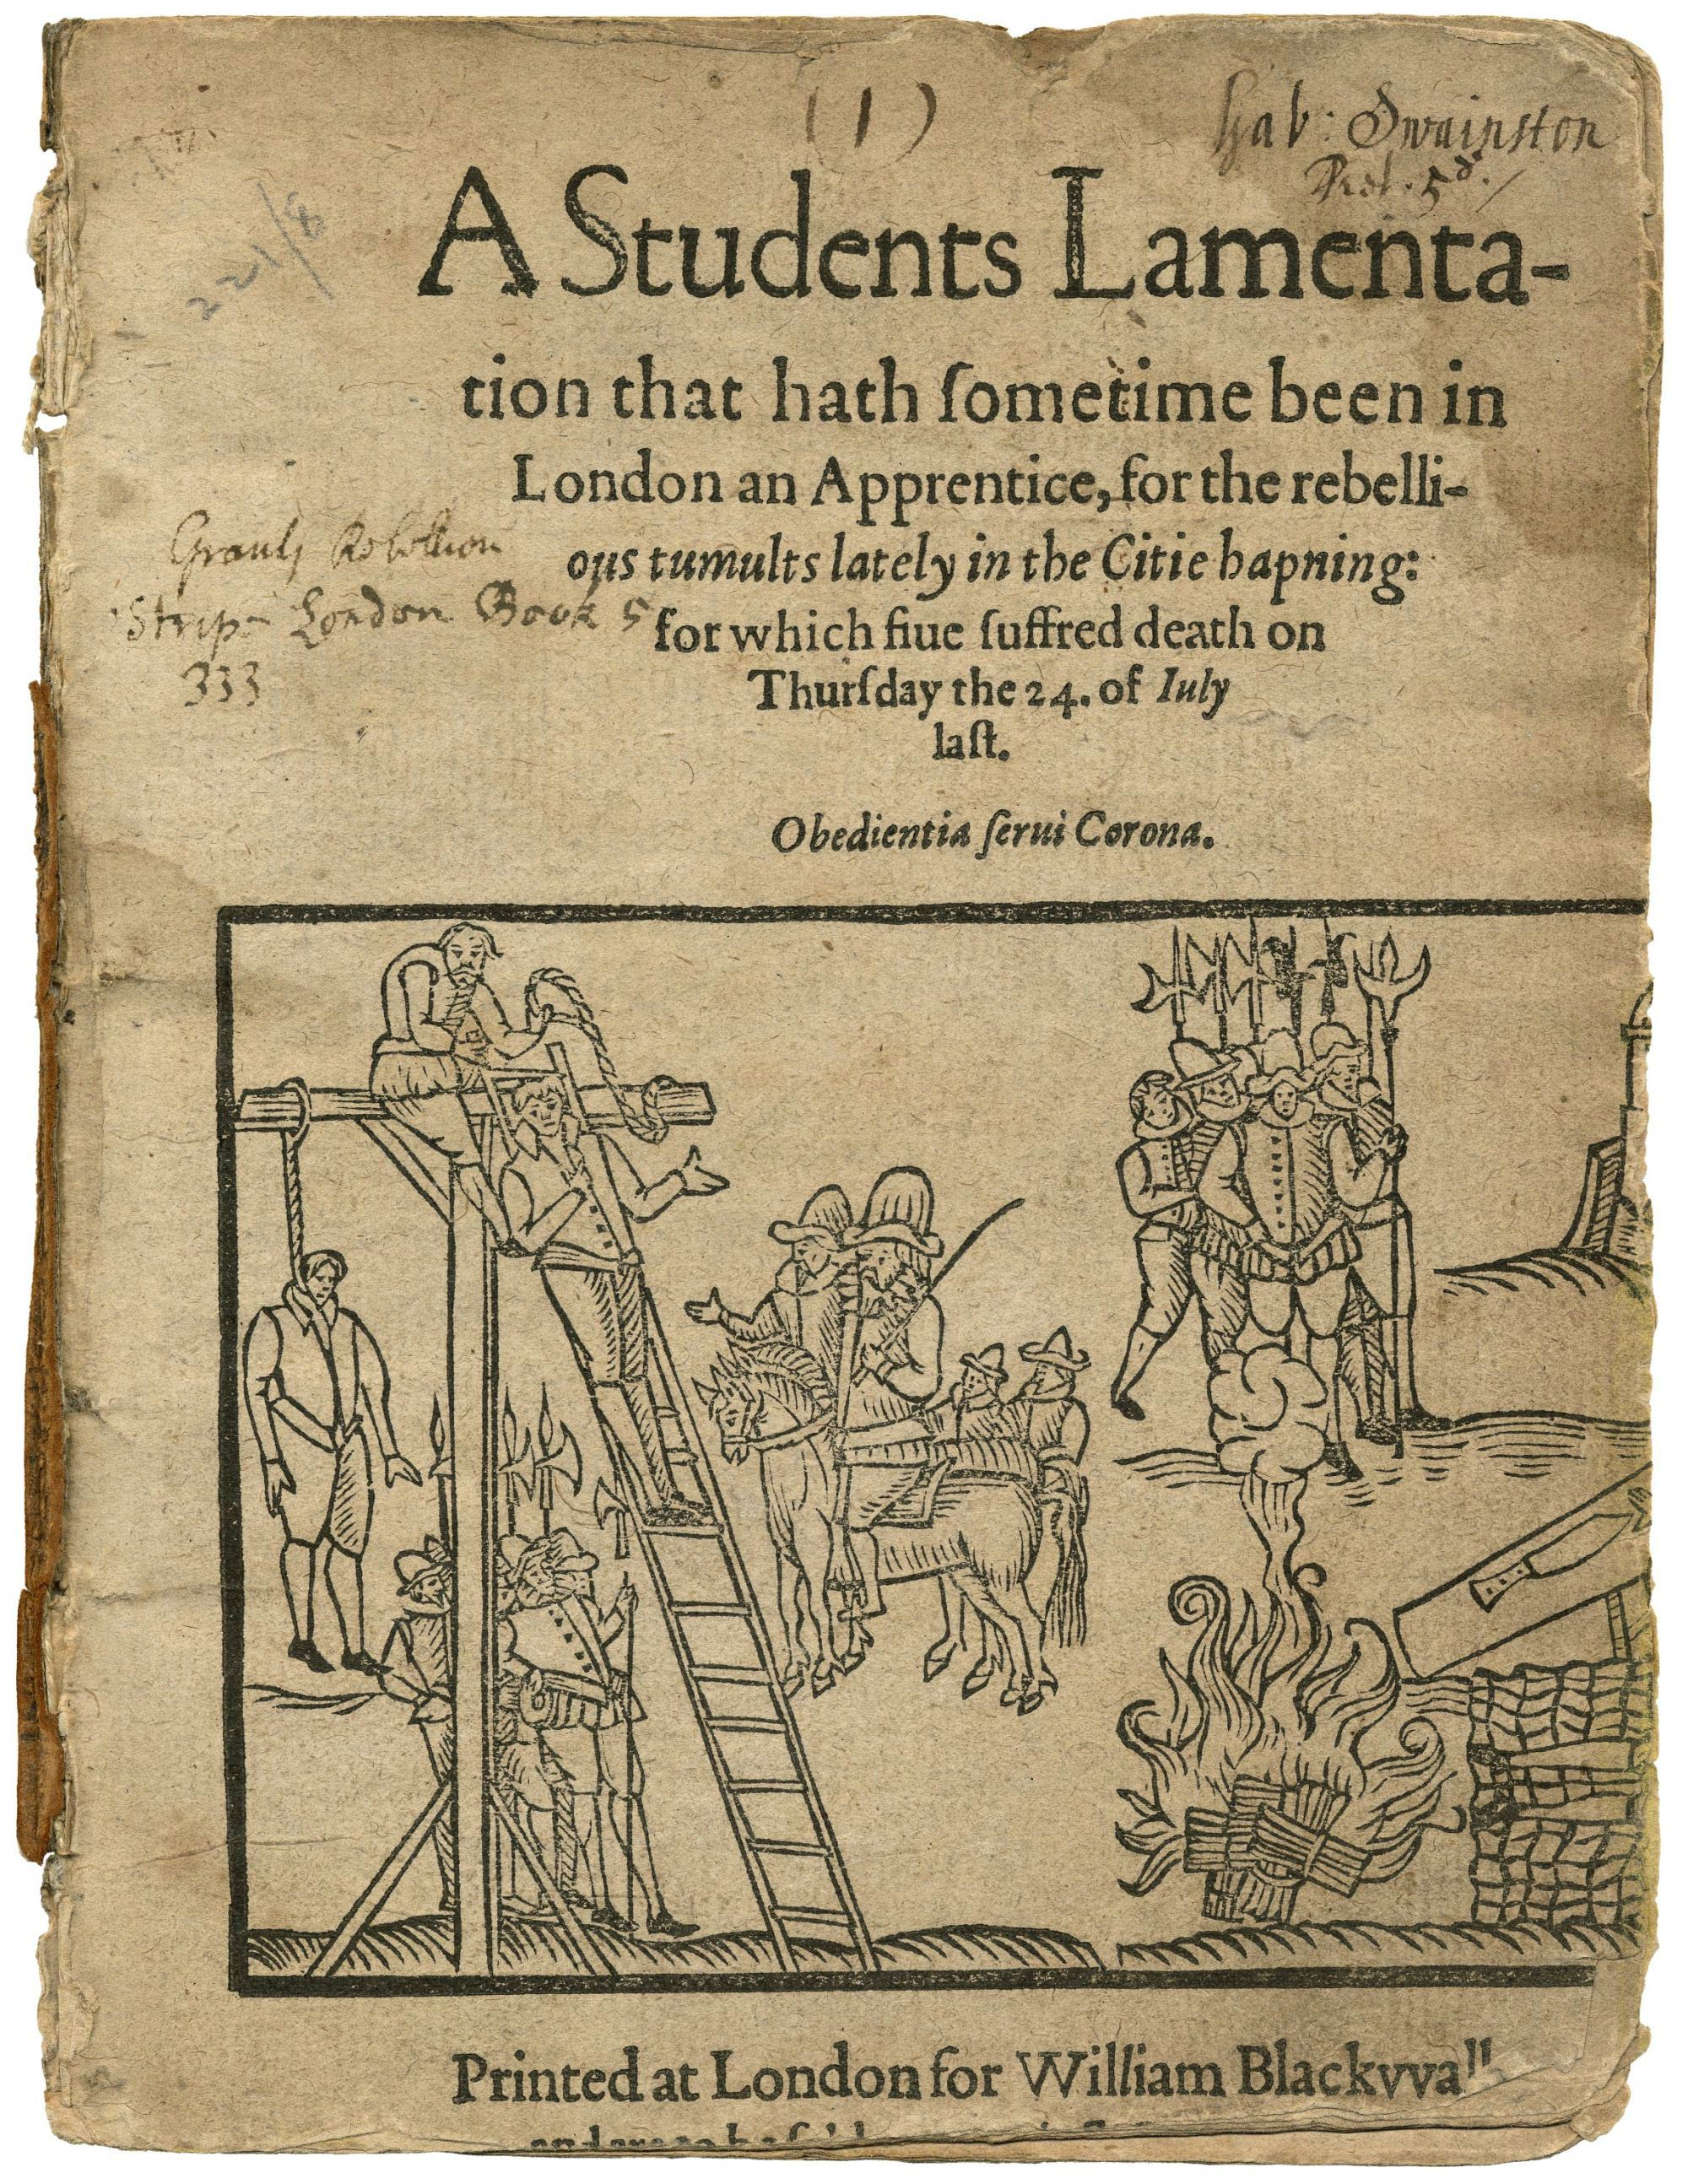 Rebellion by London apprentices in 1595